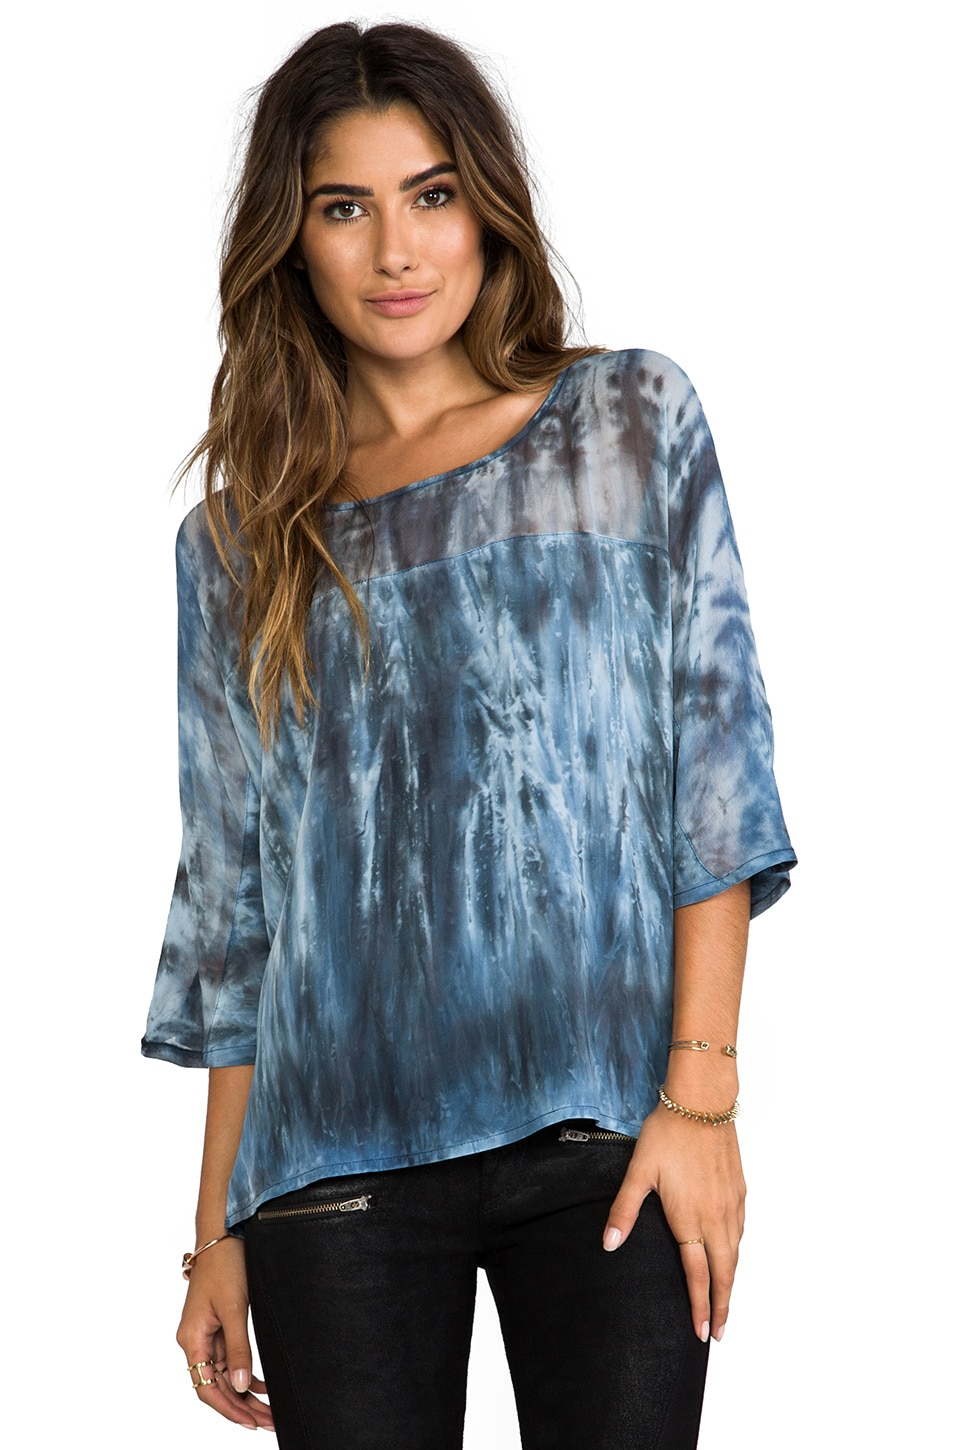 Gypsy 05 Mixed Silk Oversize Top in Charcoal